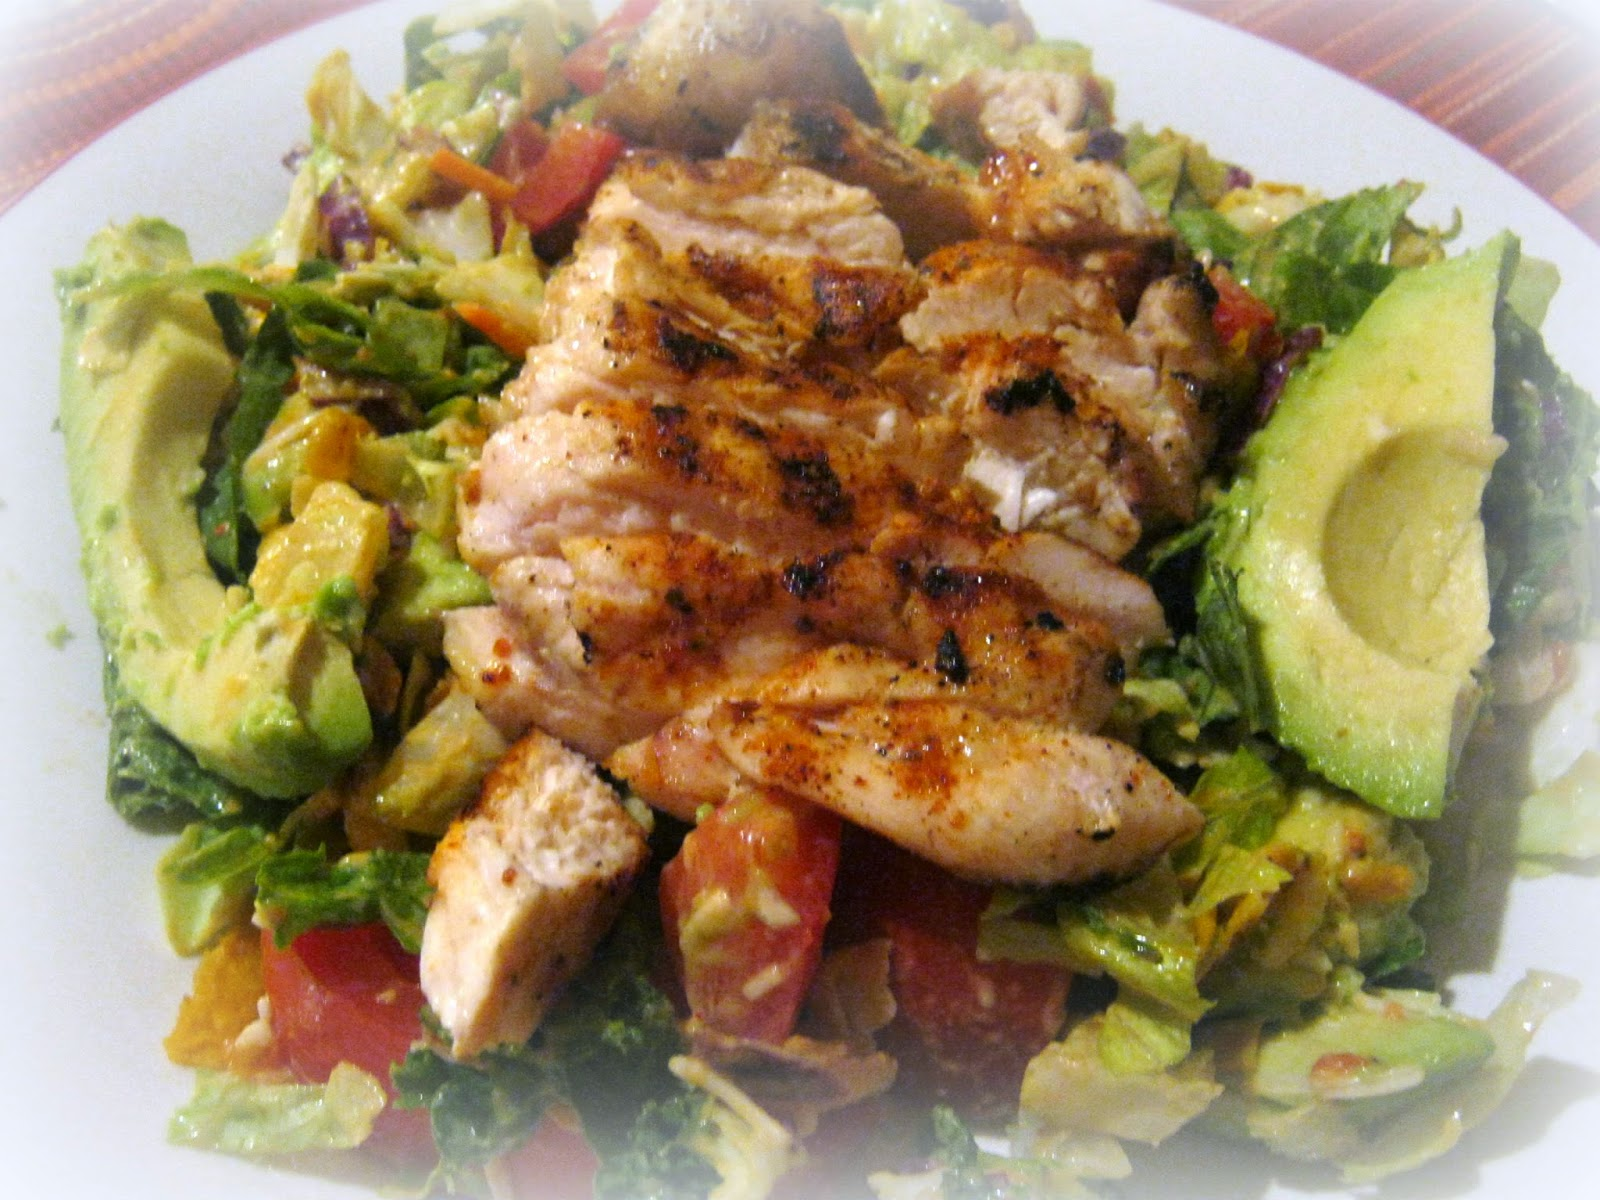 Chopped Chipotle Cheddar Chicken Dinner Salad With Tomato and Avocado